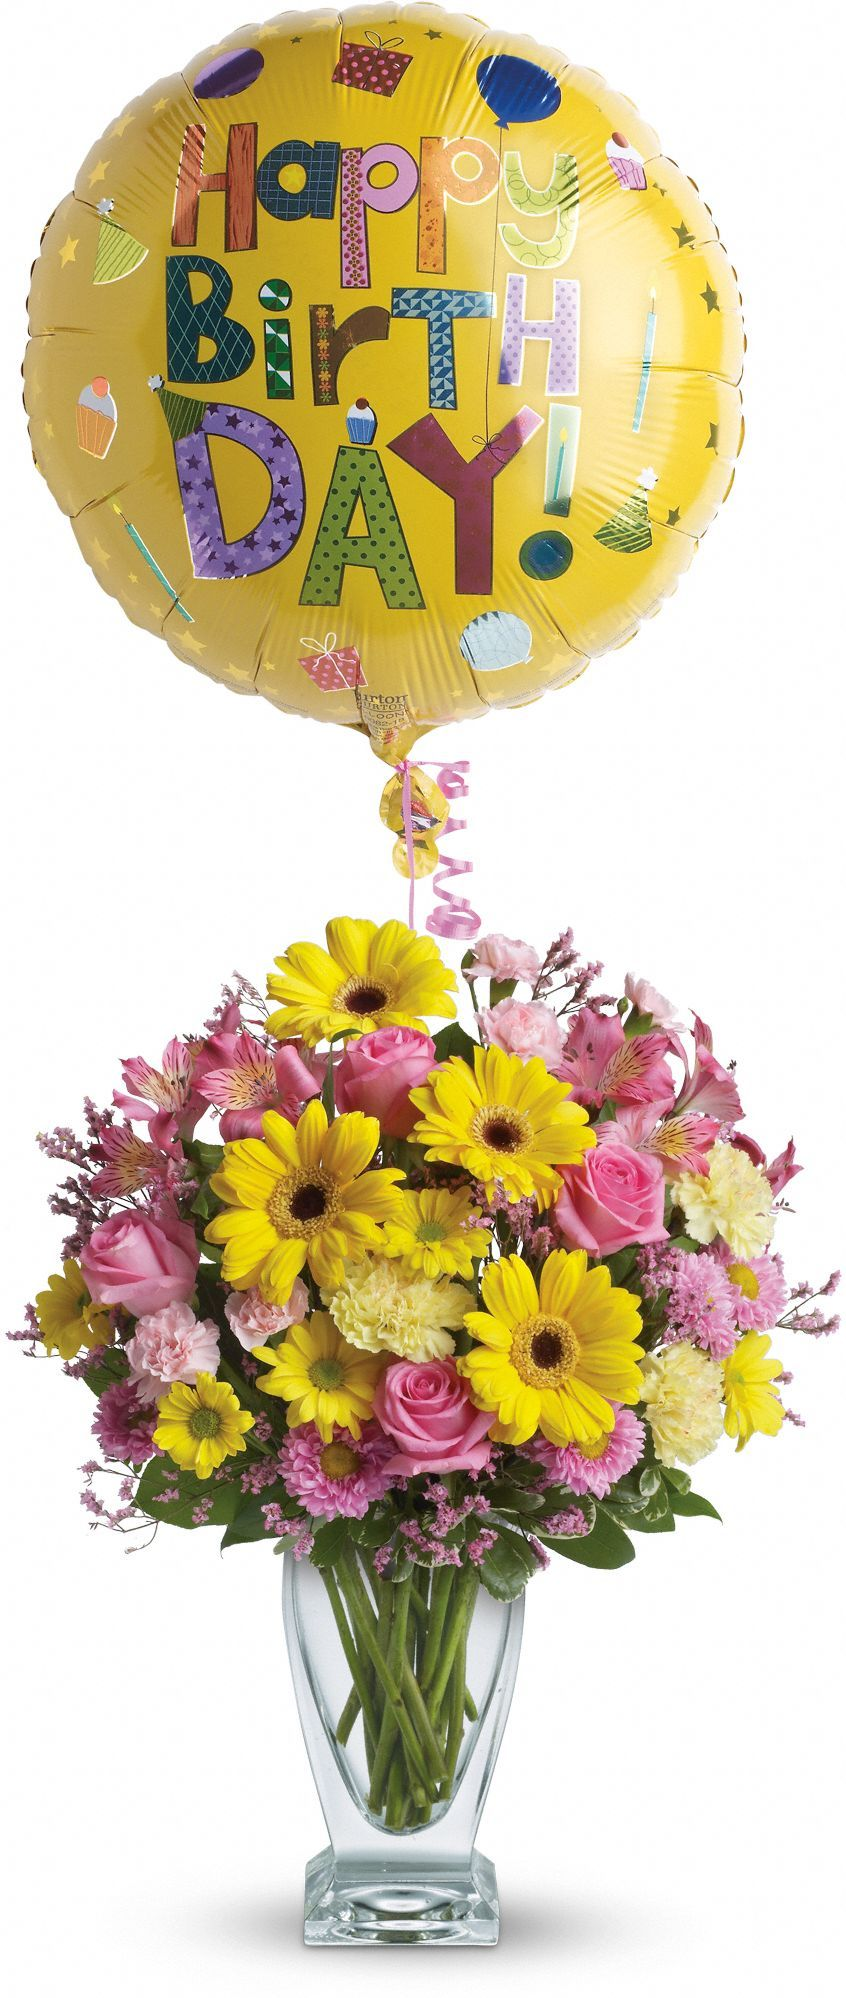 Teleflora's Dazzling Day Bouquet Save 25 on this bouquet